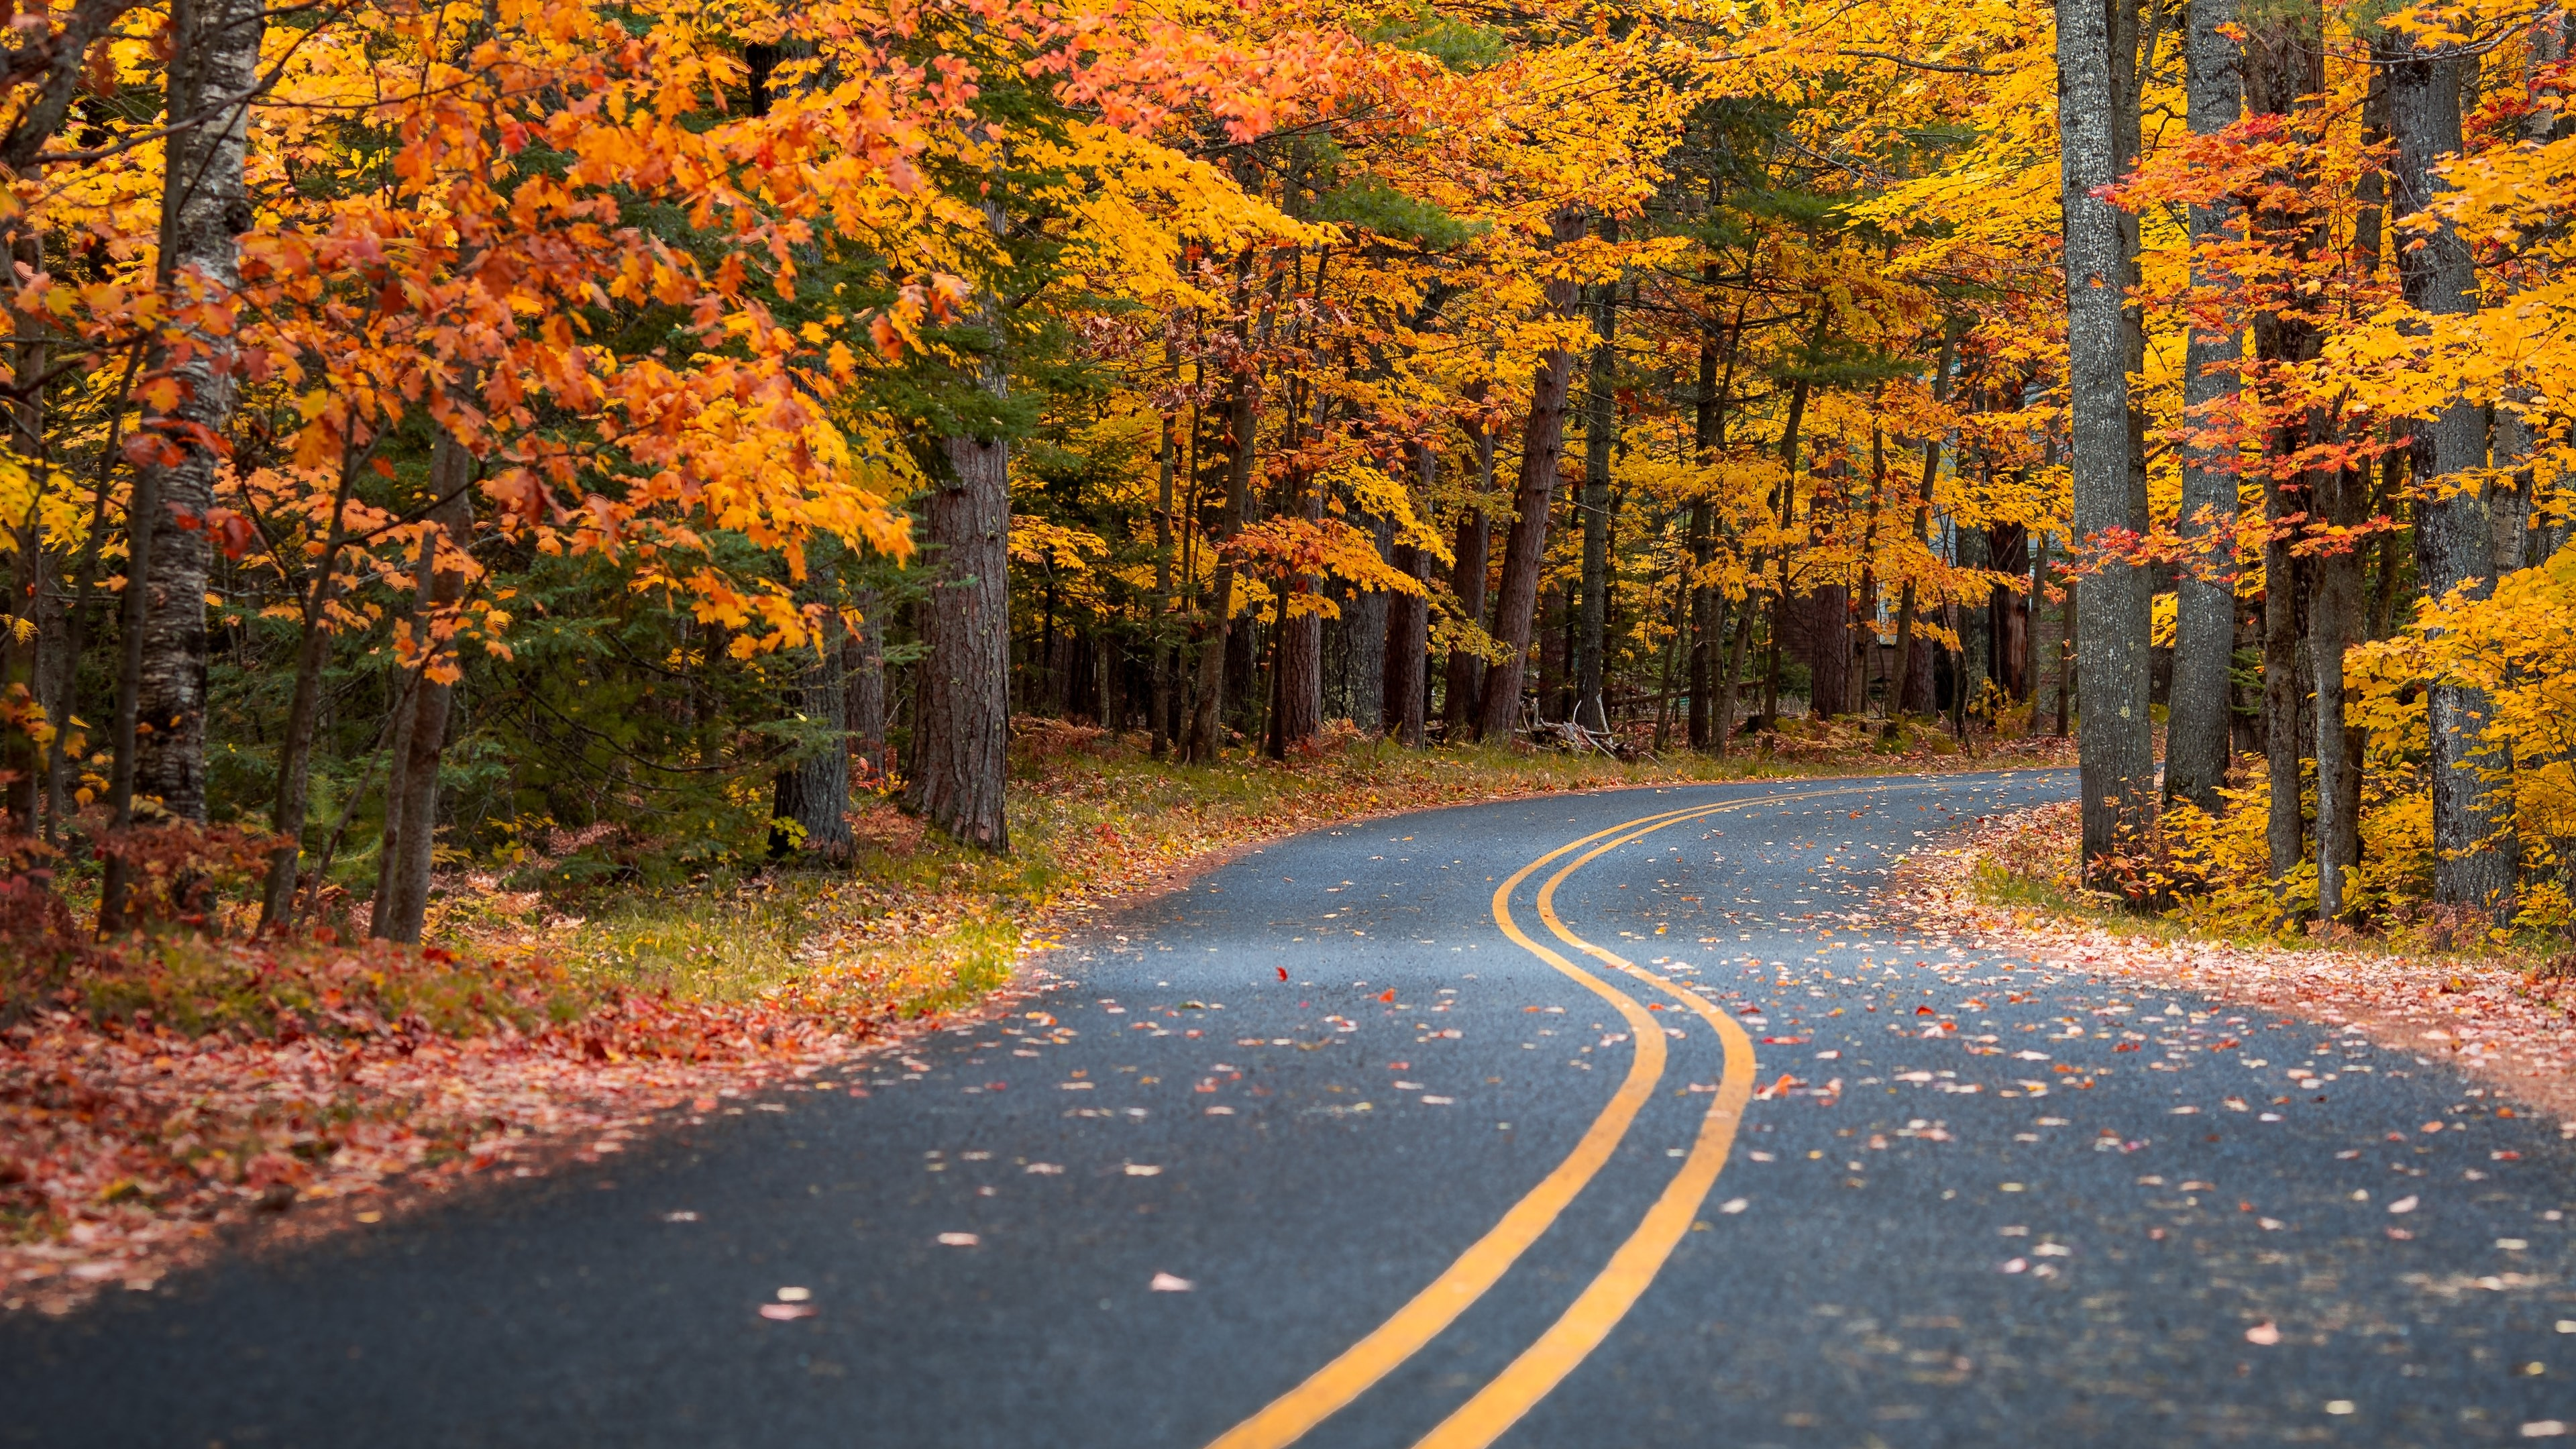 Autumn Road Scenery Wallpaper for Desktop